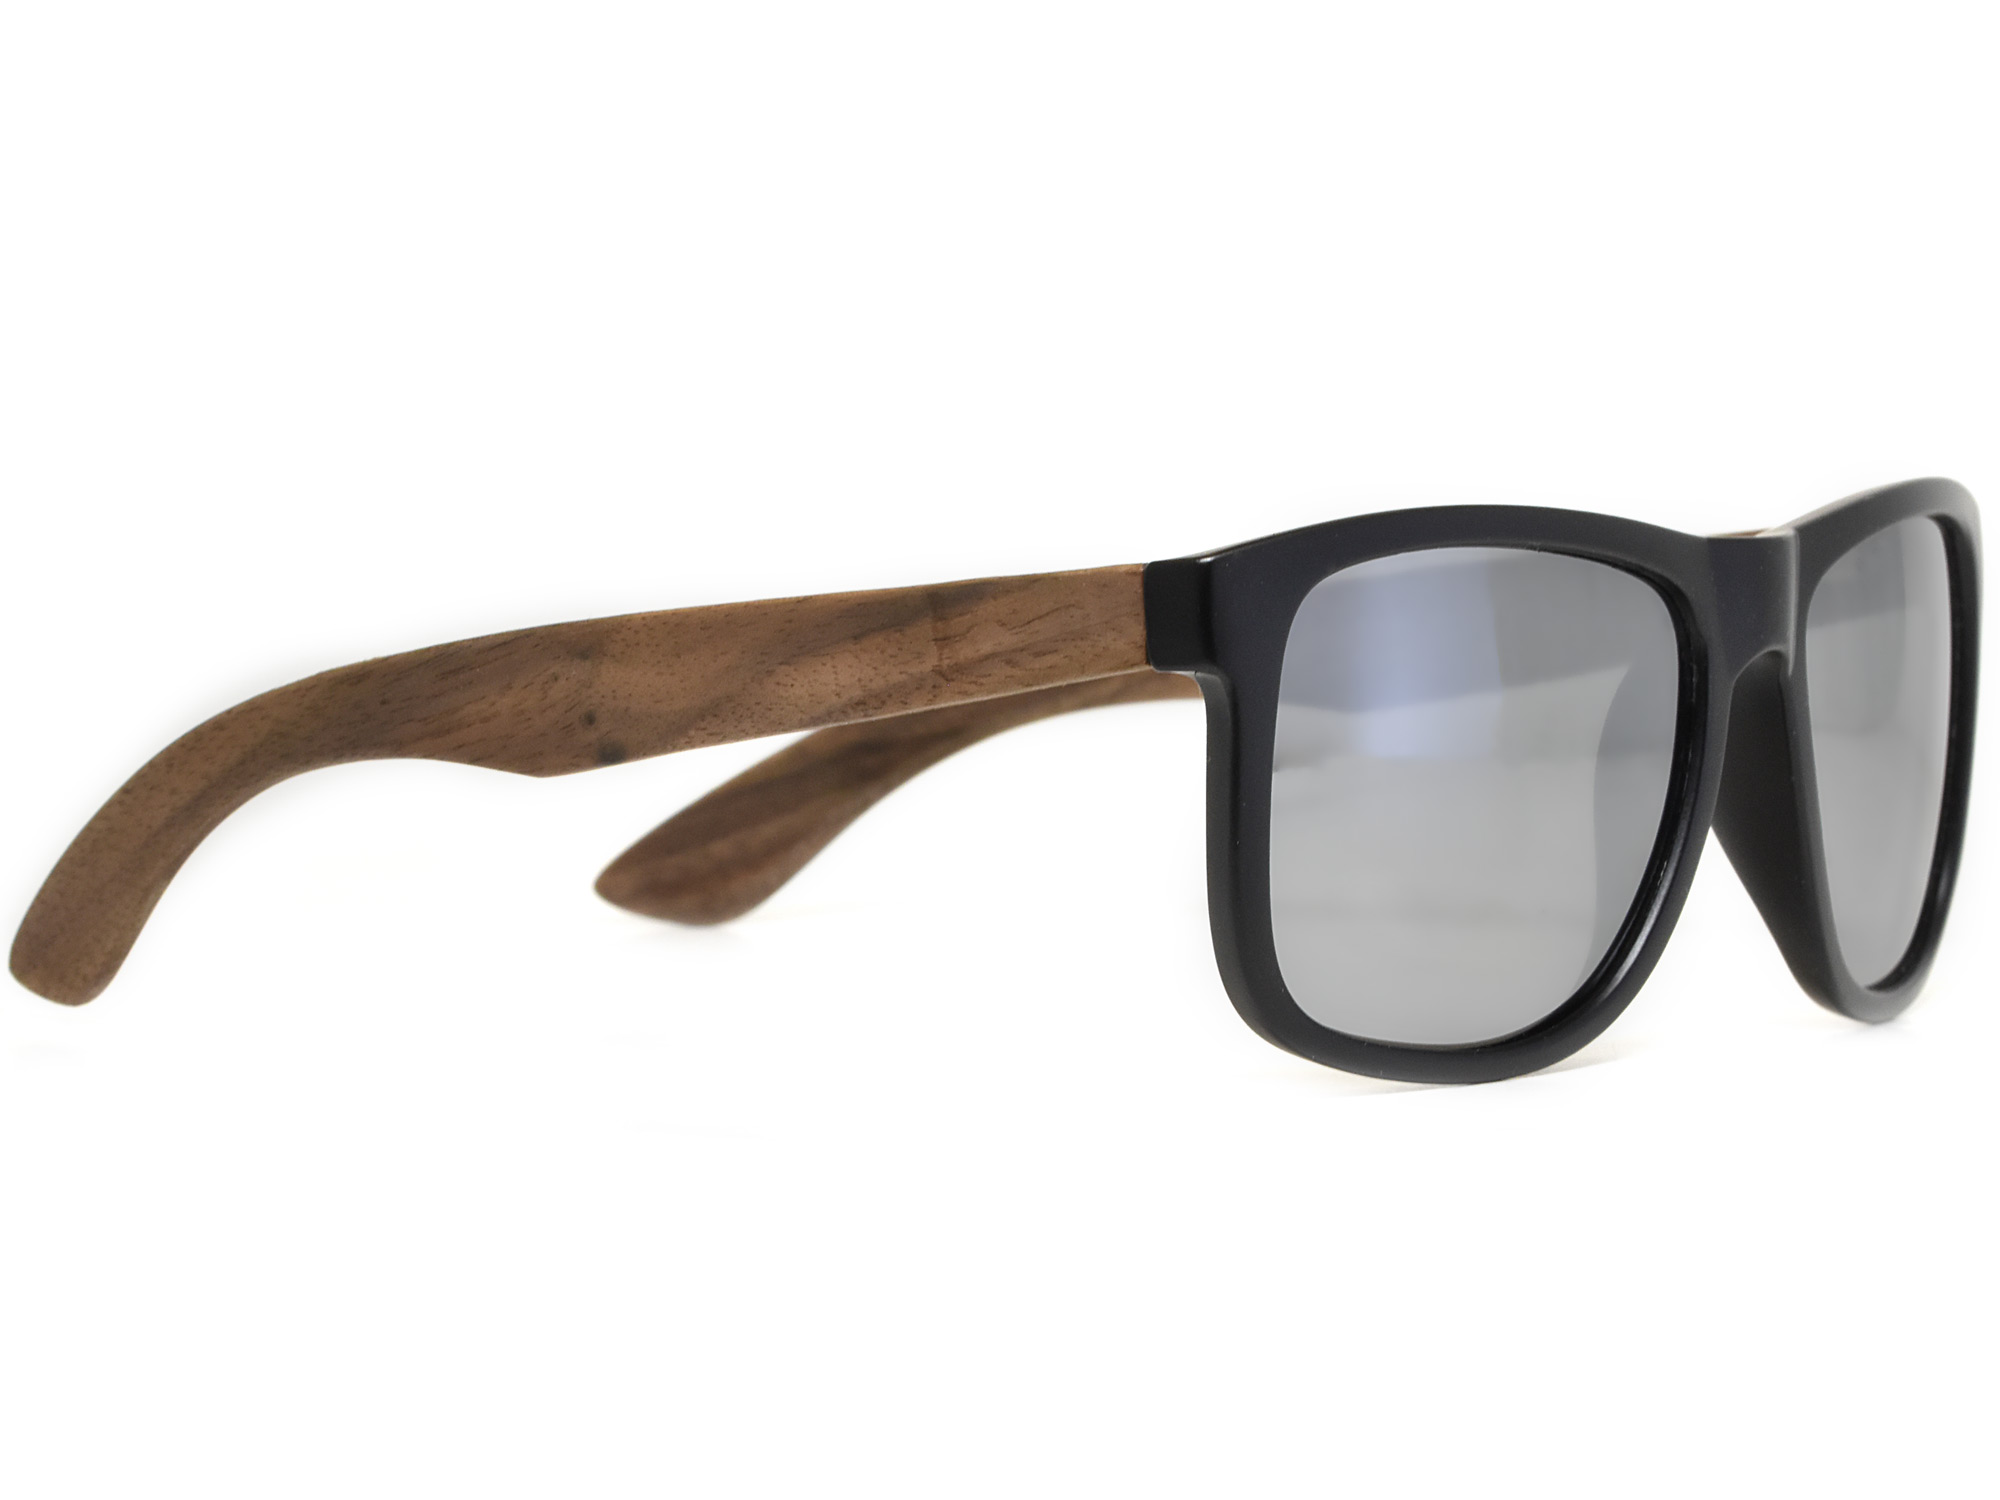 Square walnut wood sunglasses with silver mirrored polarized lenses right